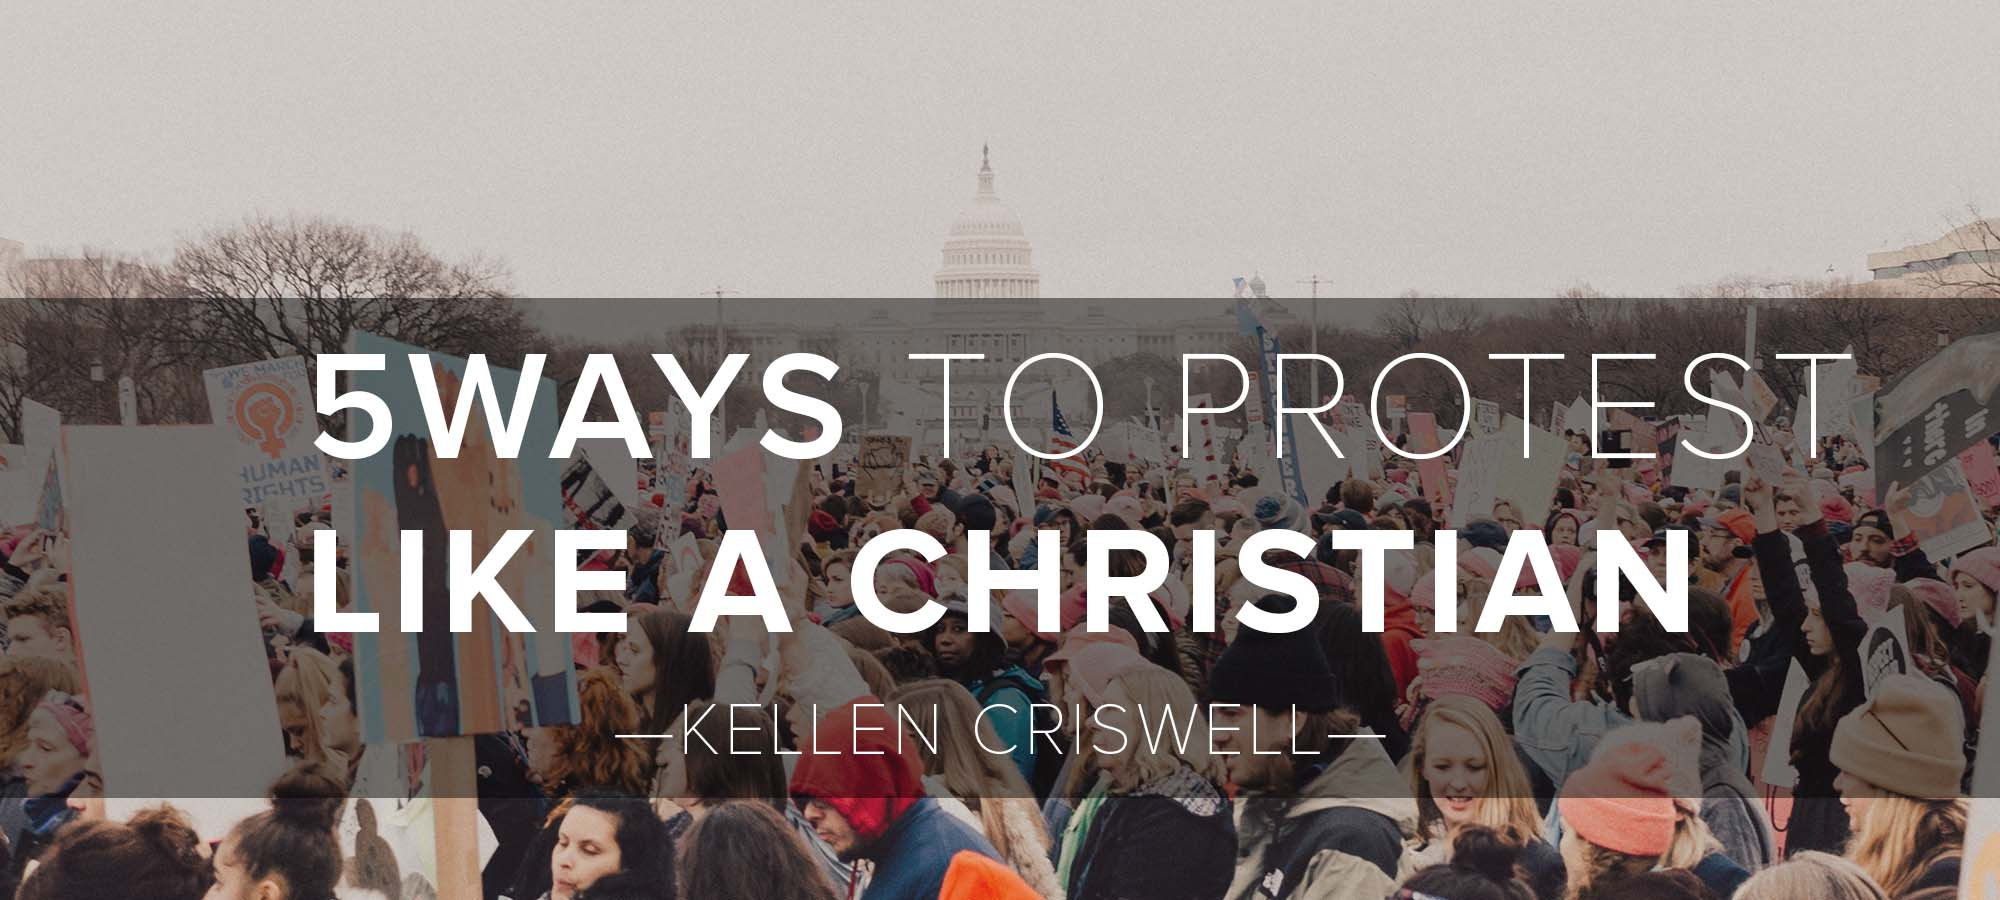 Five Ways to Protest Like a Christian